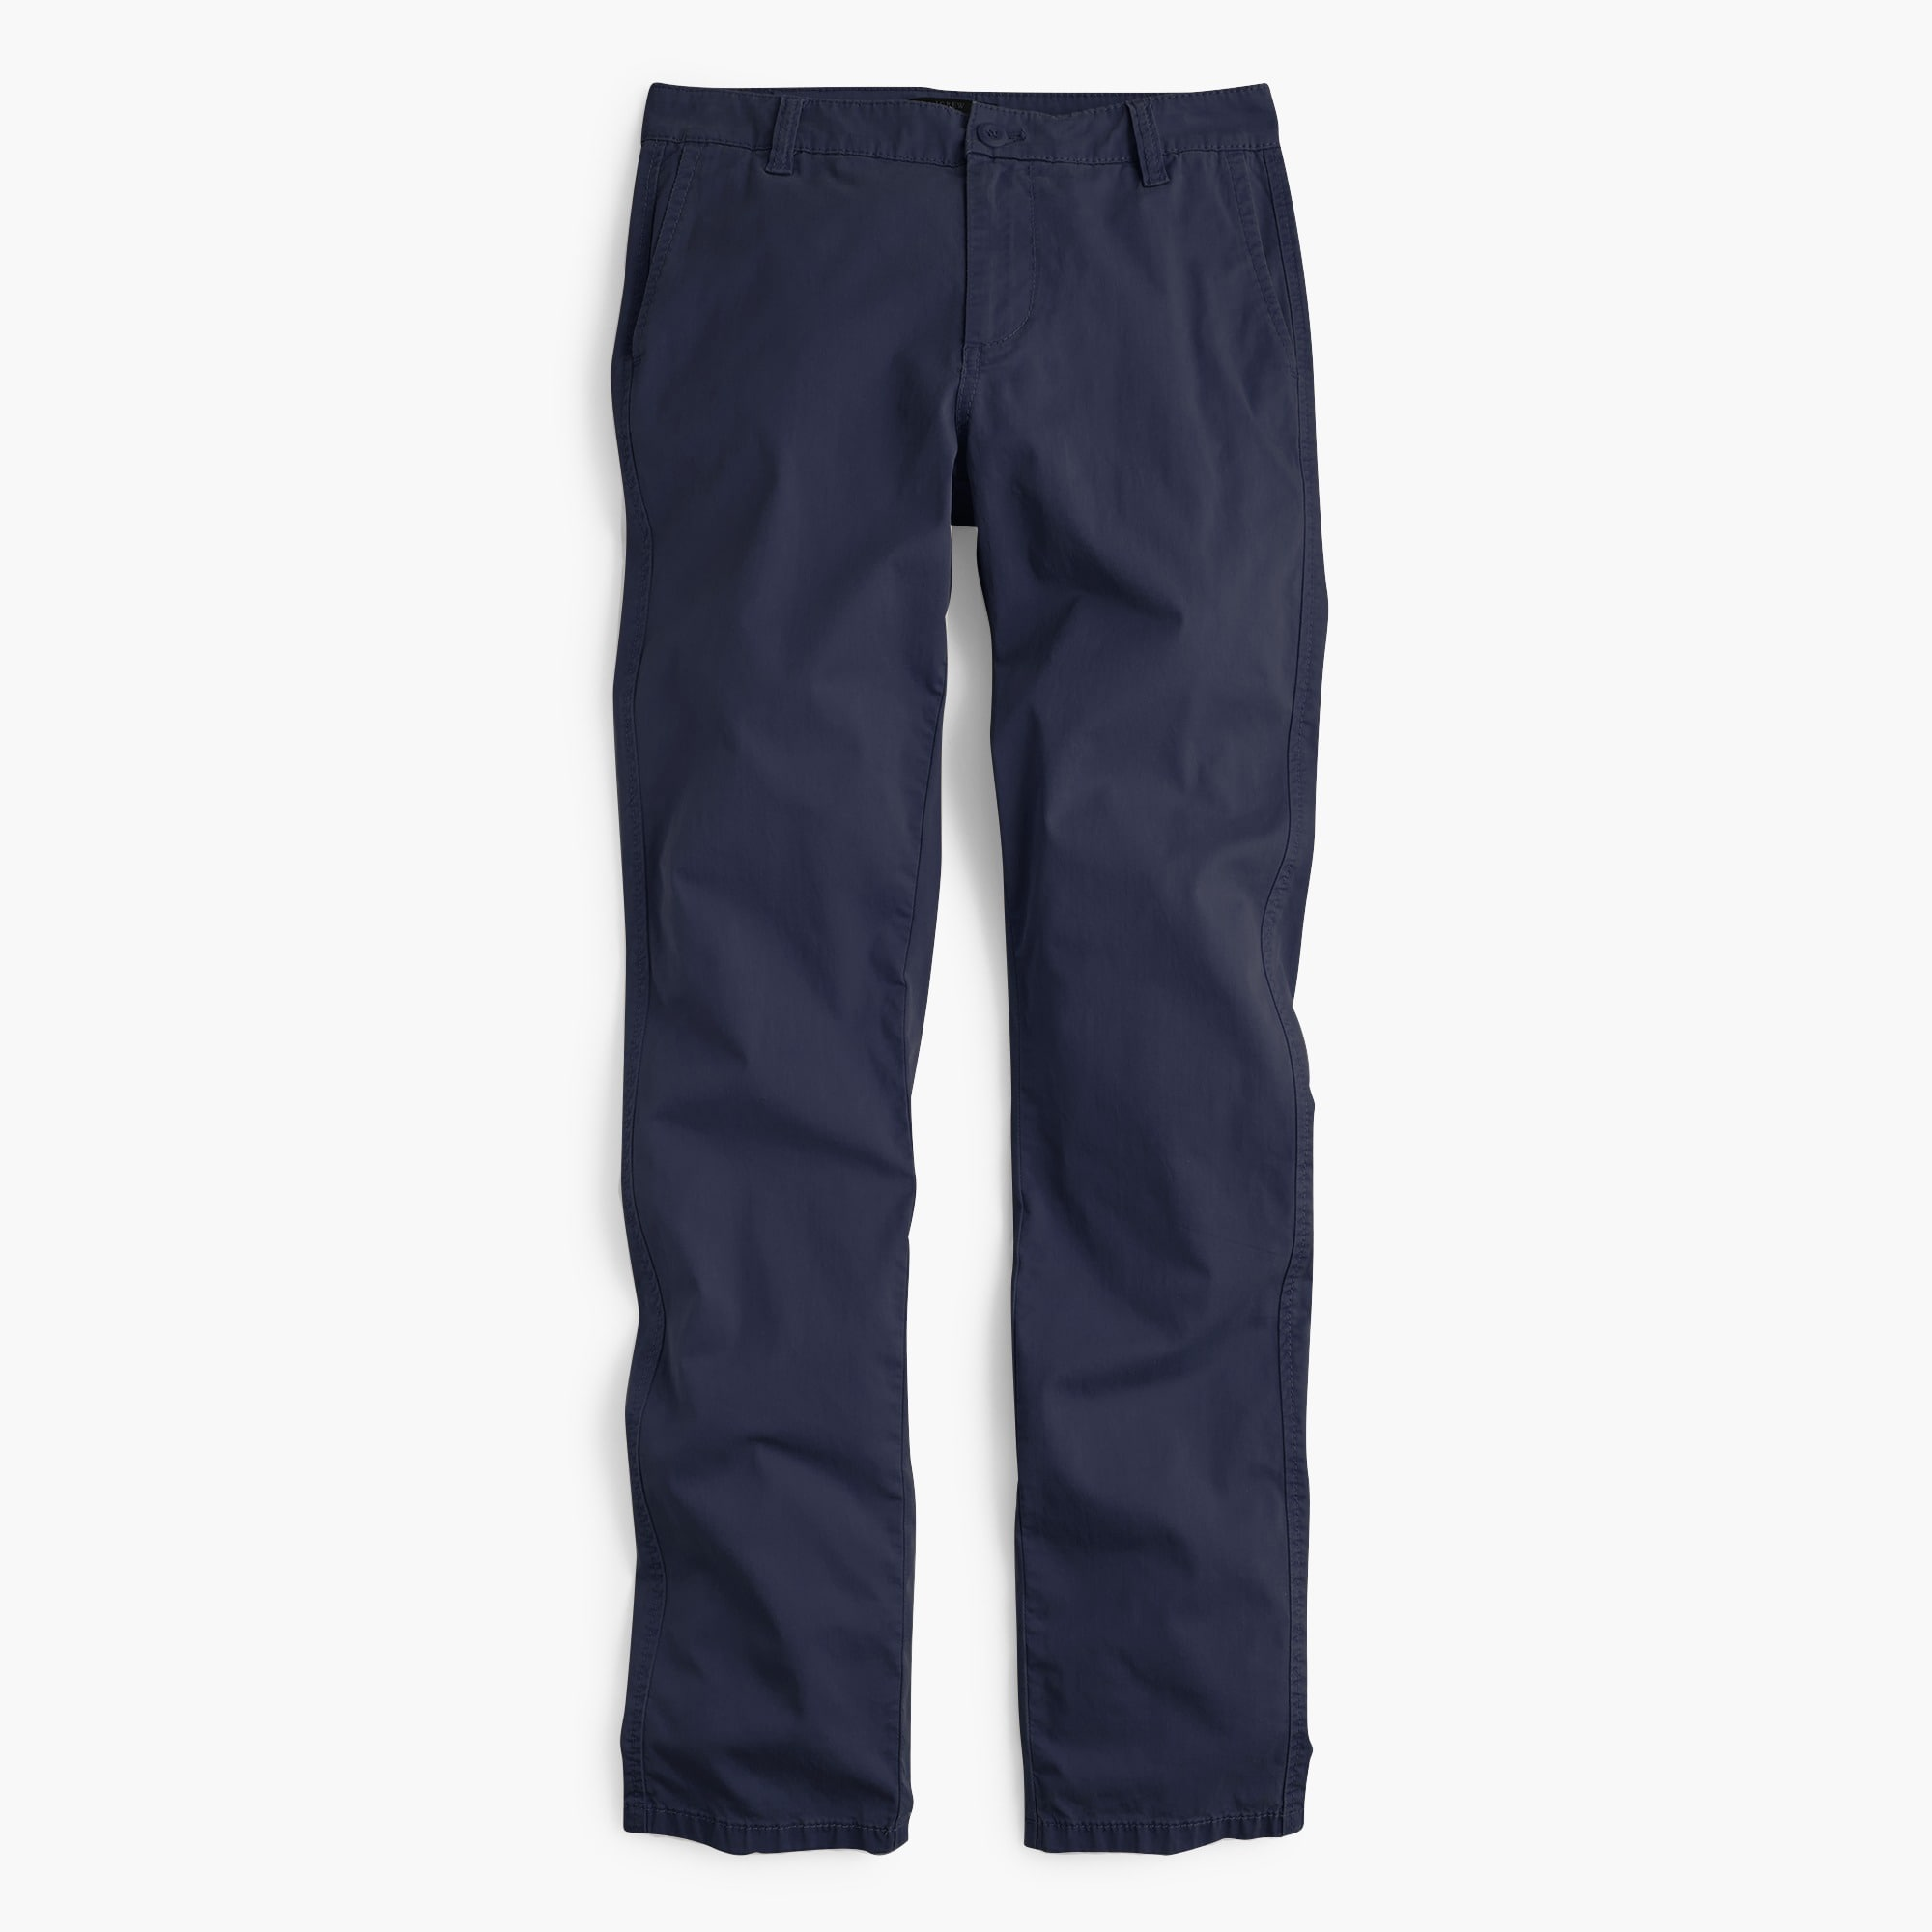 Image 3 for Petite straight-leg pant in stretch chino